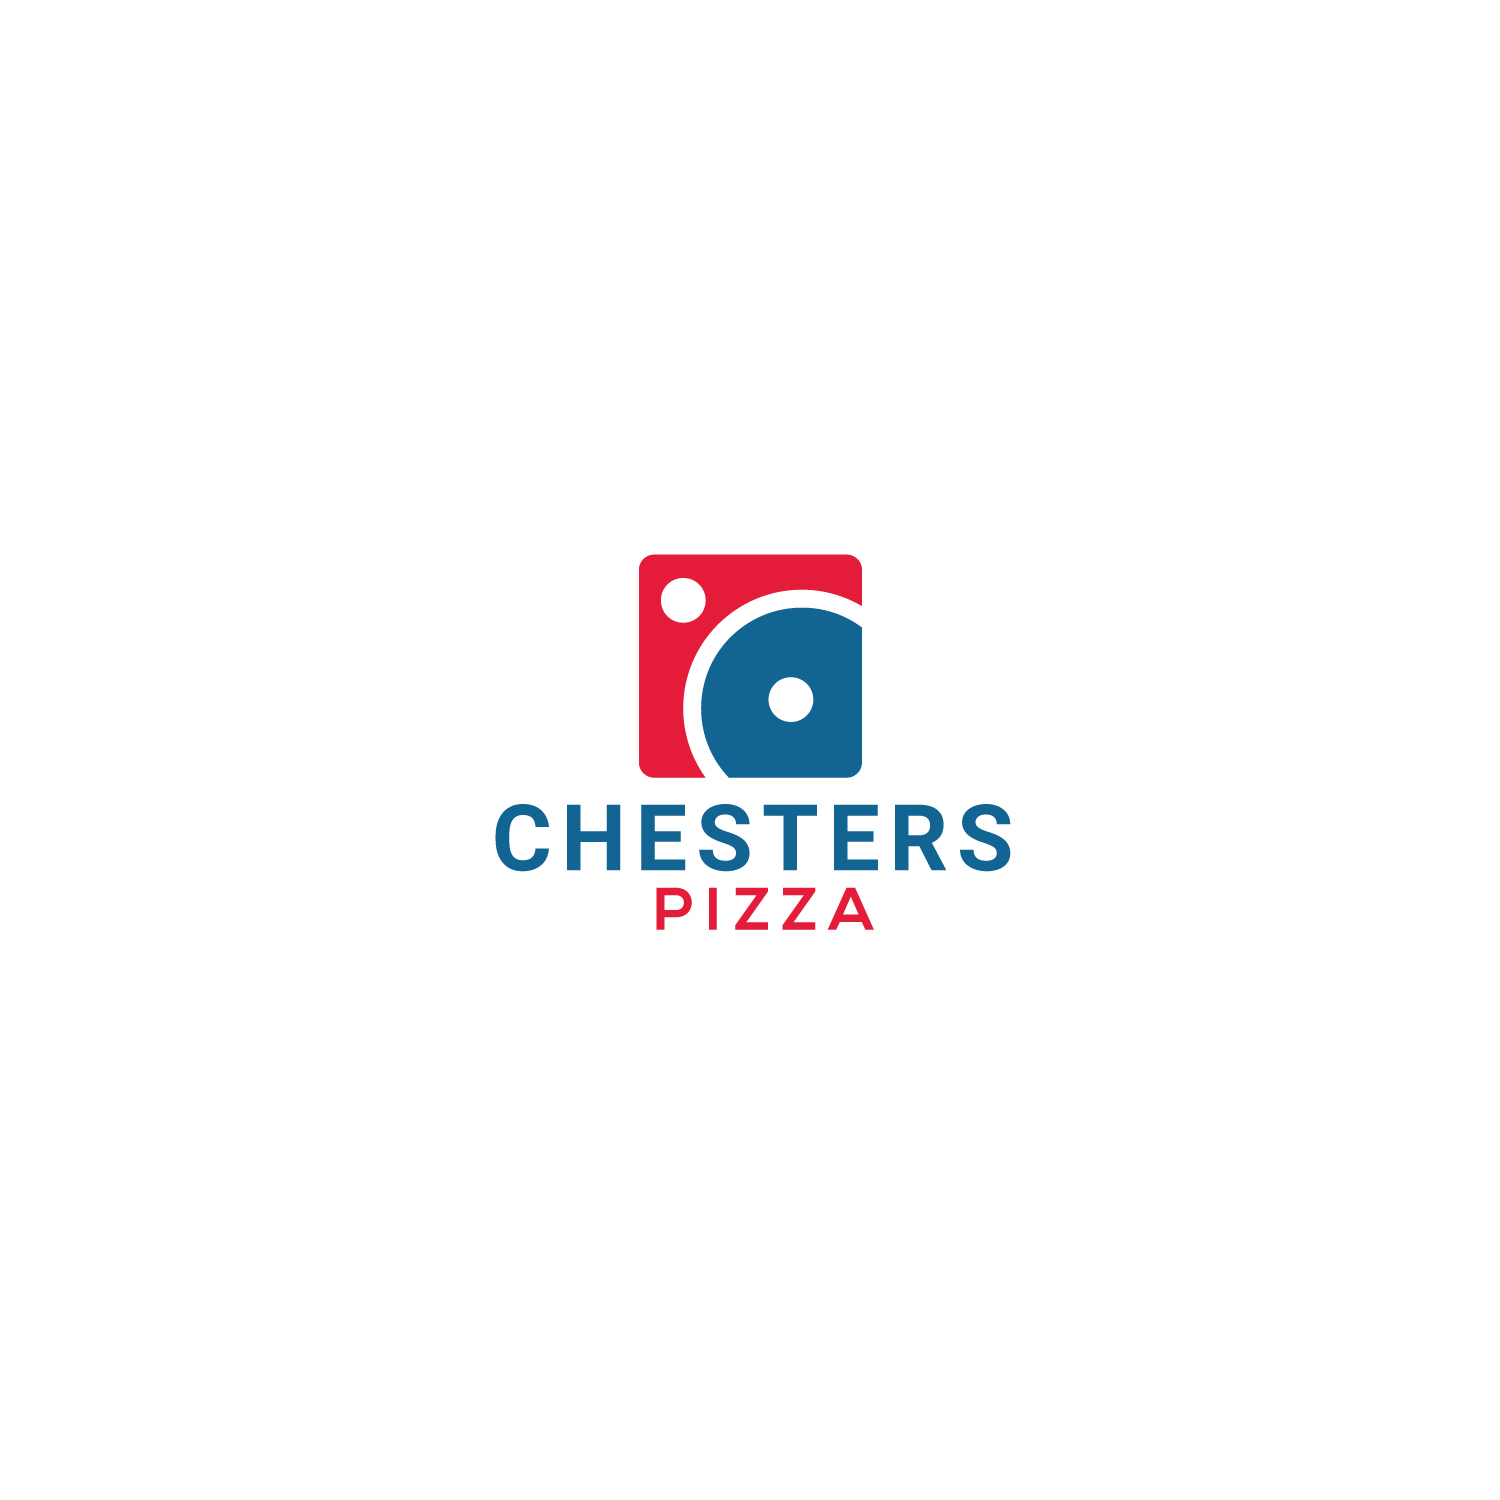 Design D'intérieur Aec Logo Design For Chesters Pizza By Paras Bali Design 20566119